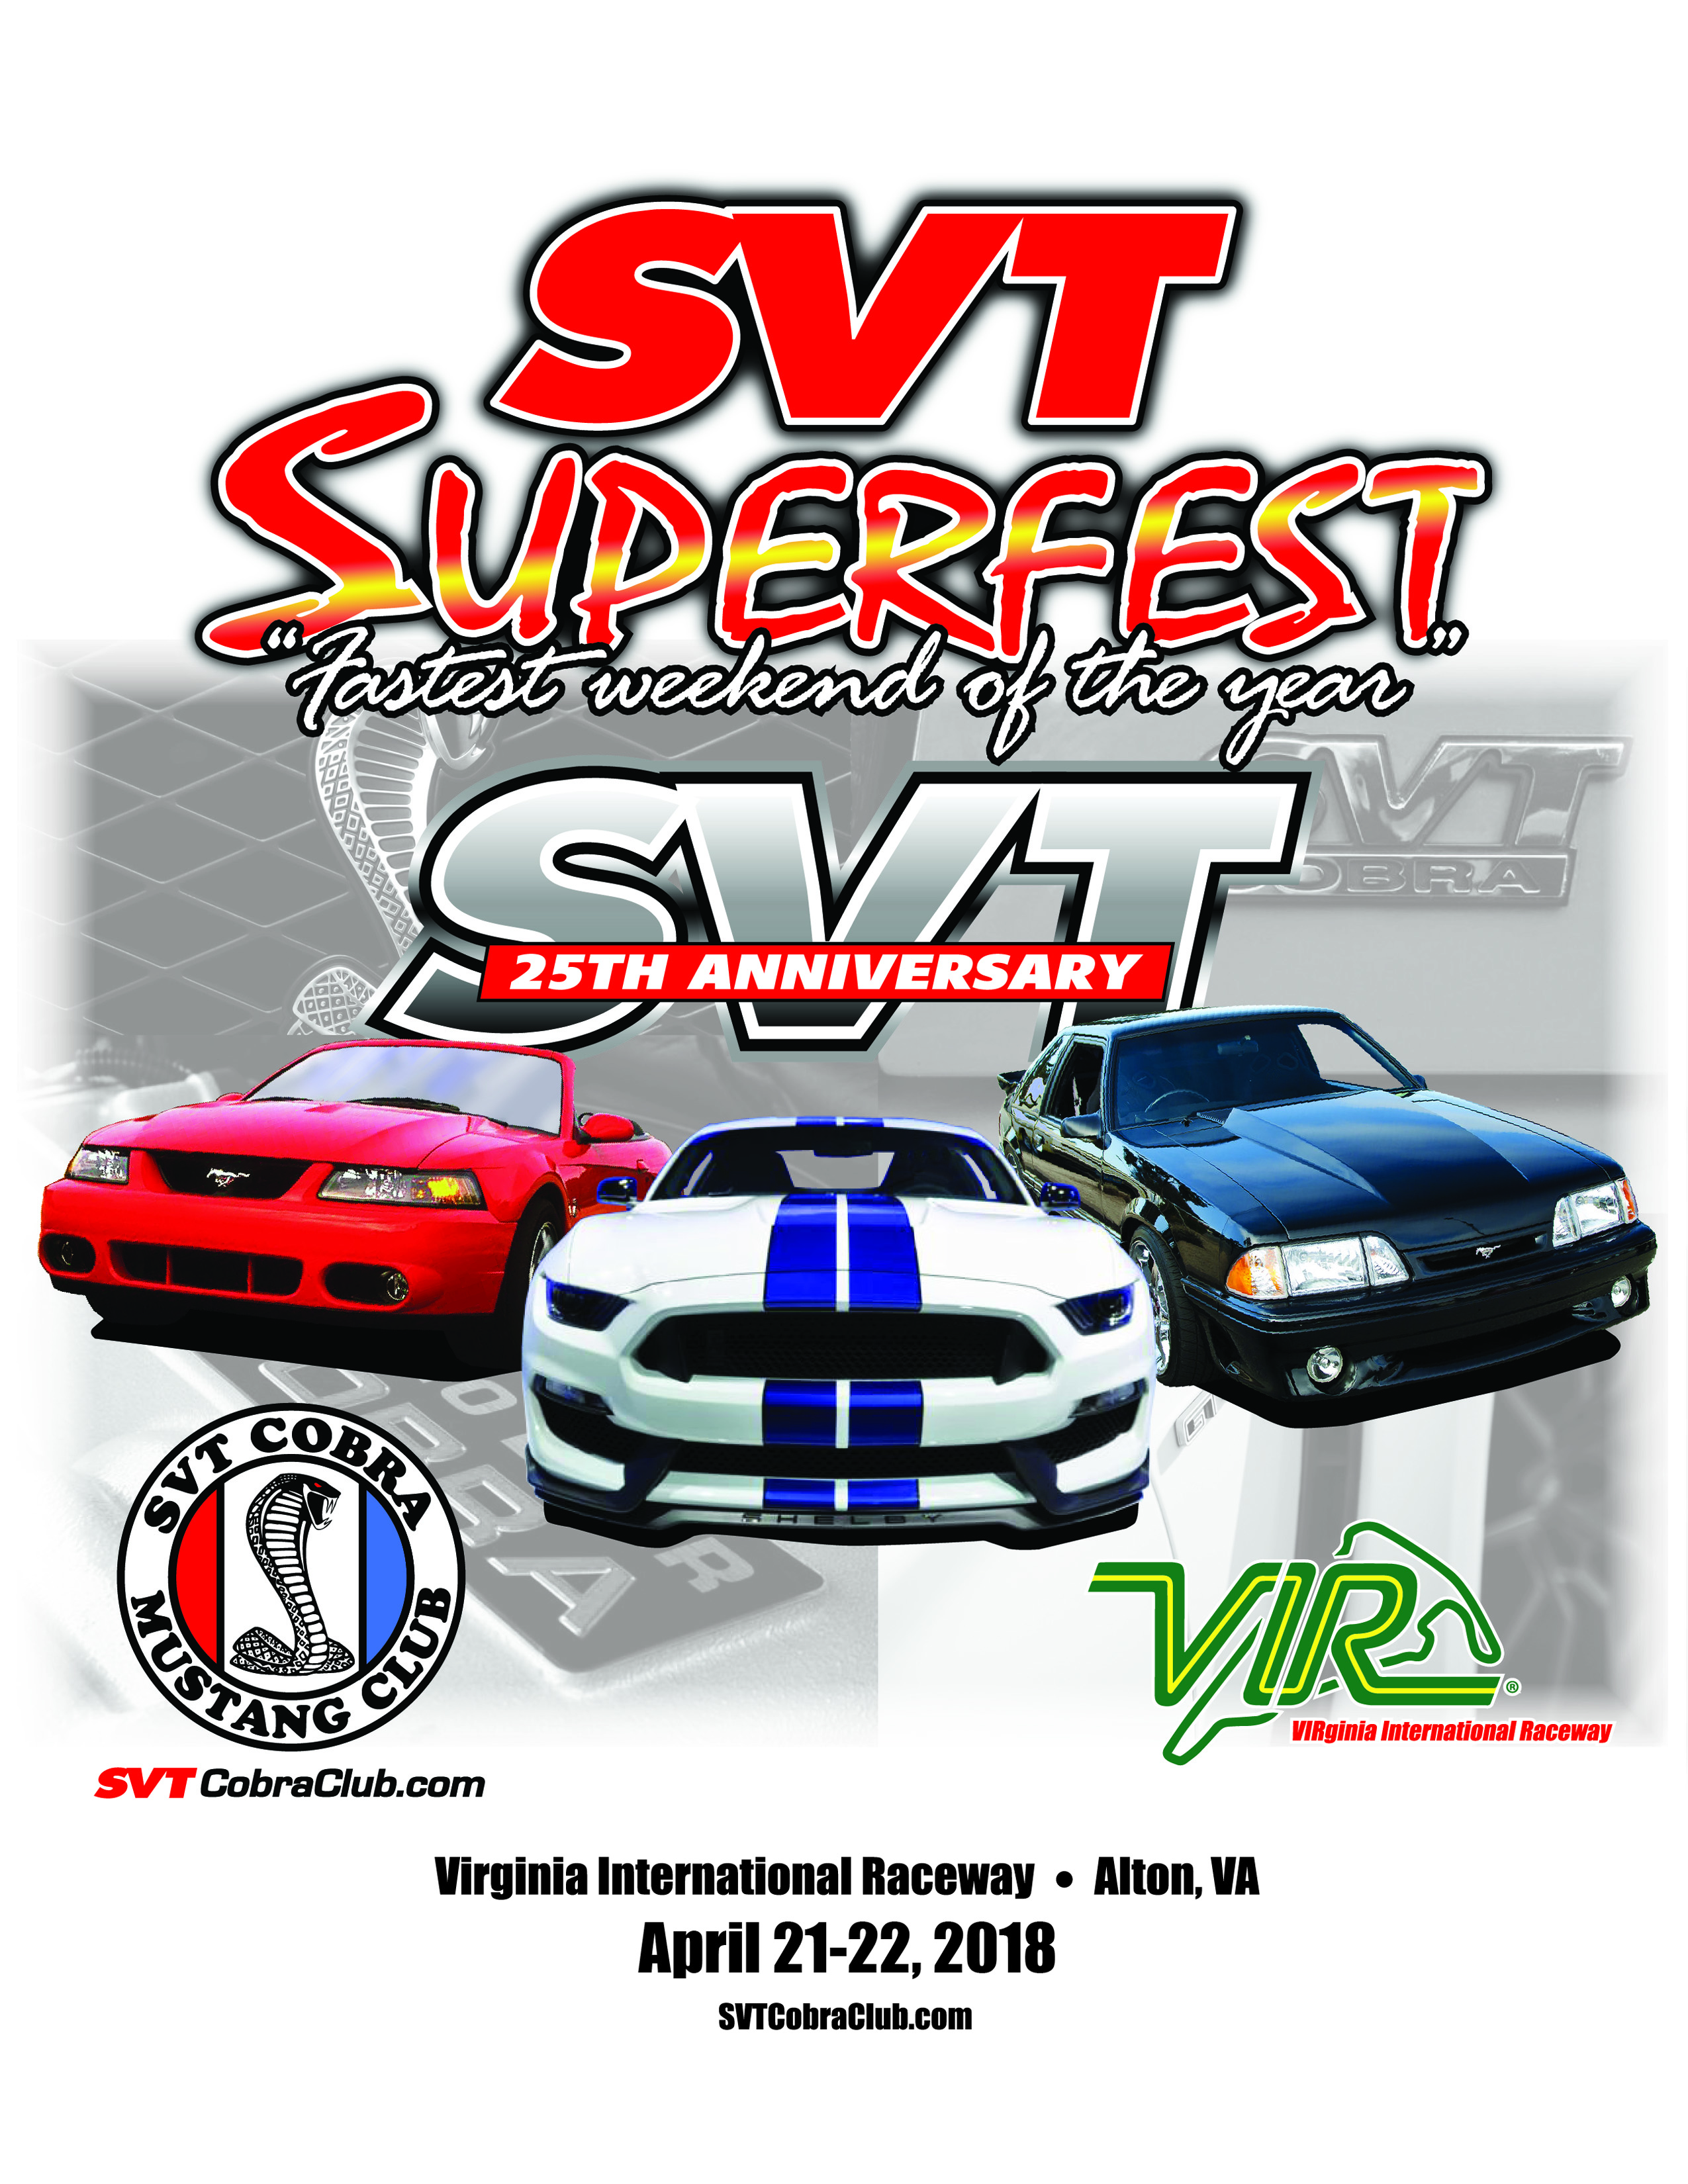 2018 SVT Superfest - Virginia International Raceway - Hosted By SCMC, Shelby GT350 OA, and Track Club USA